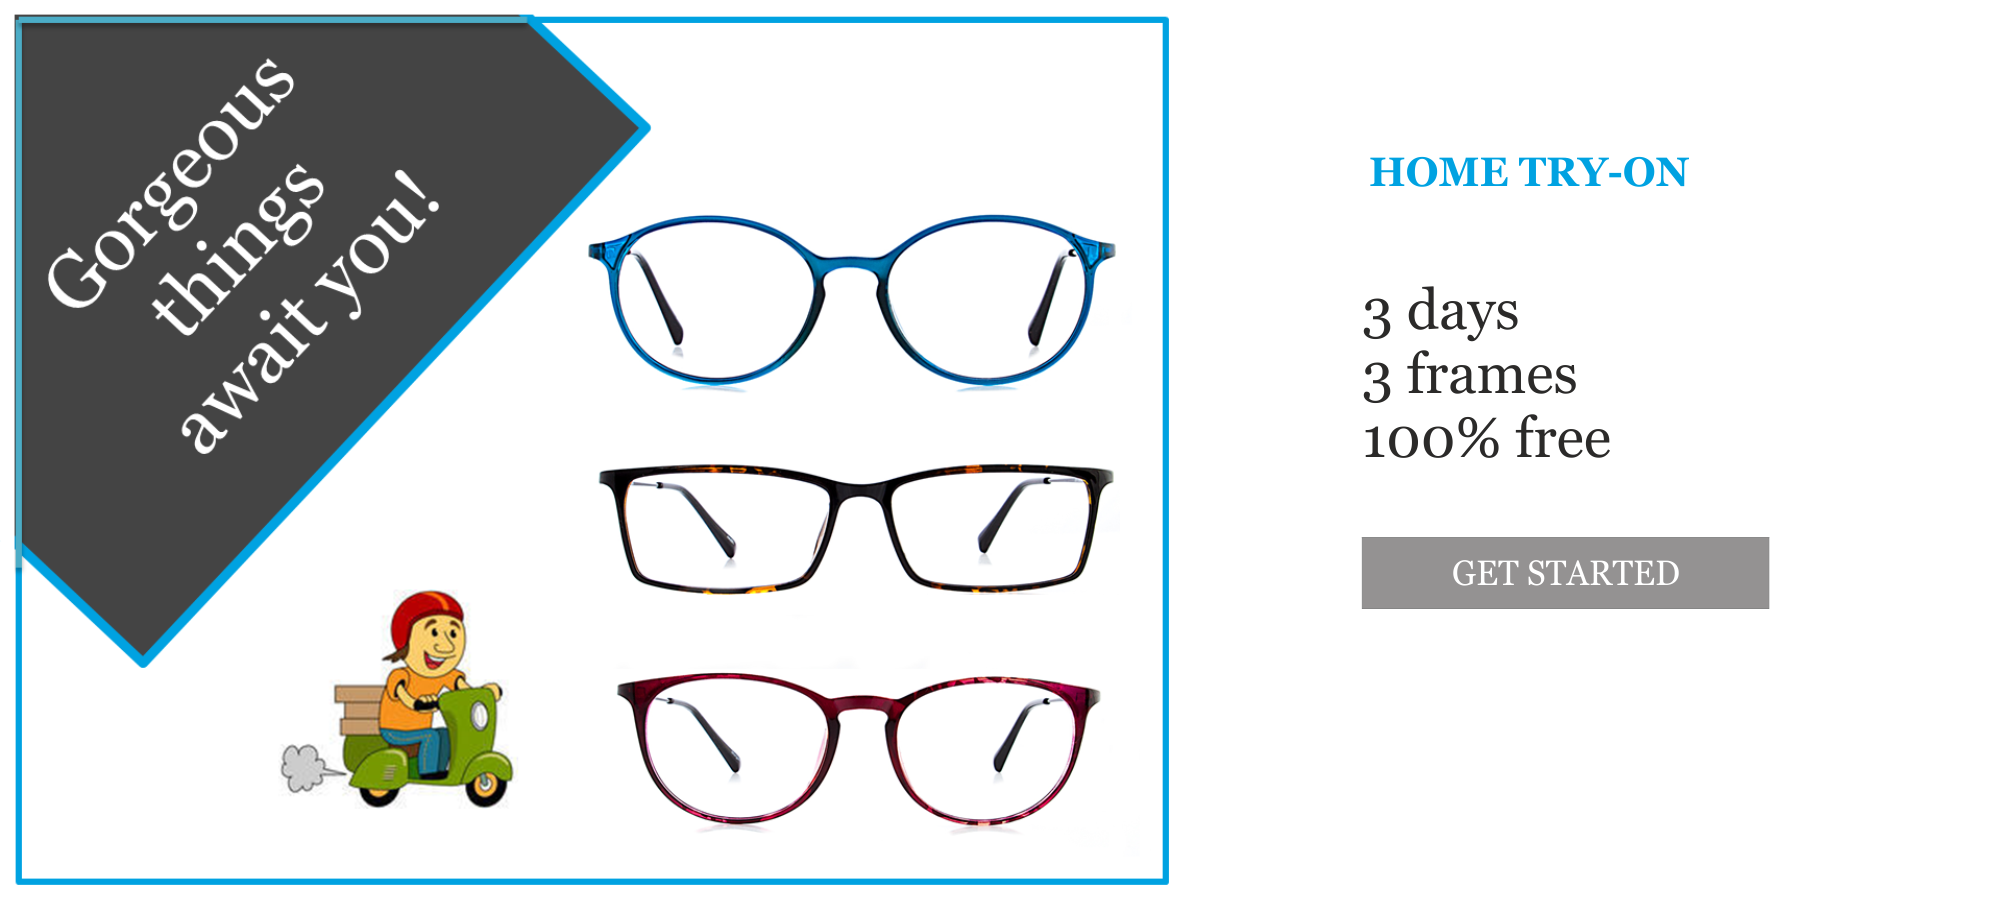 Buying eyeglasses has never been so easy, thanks to our Home Try-On ...